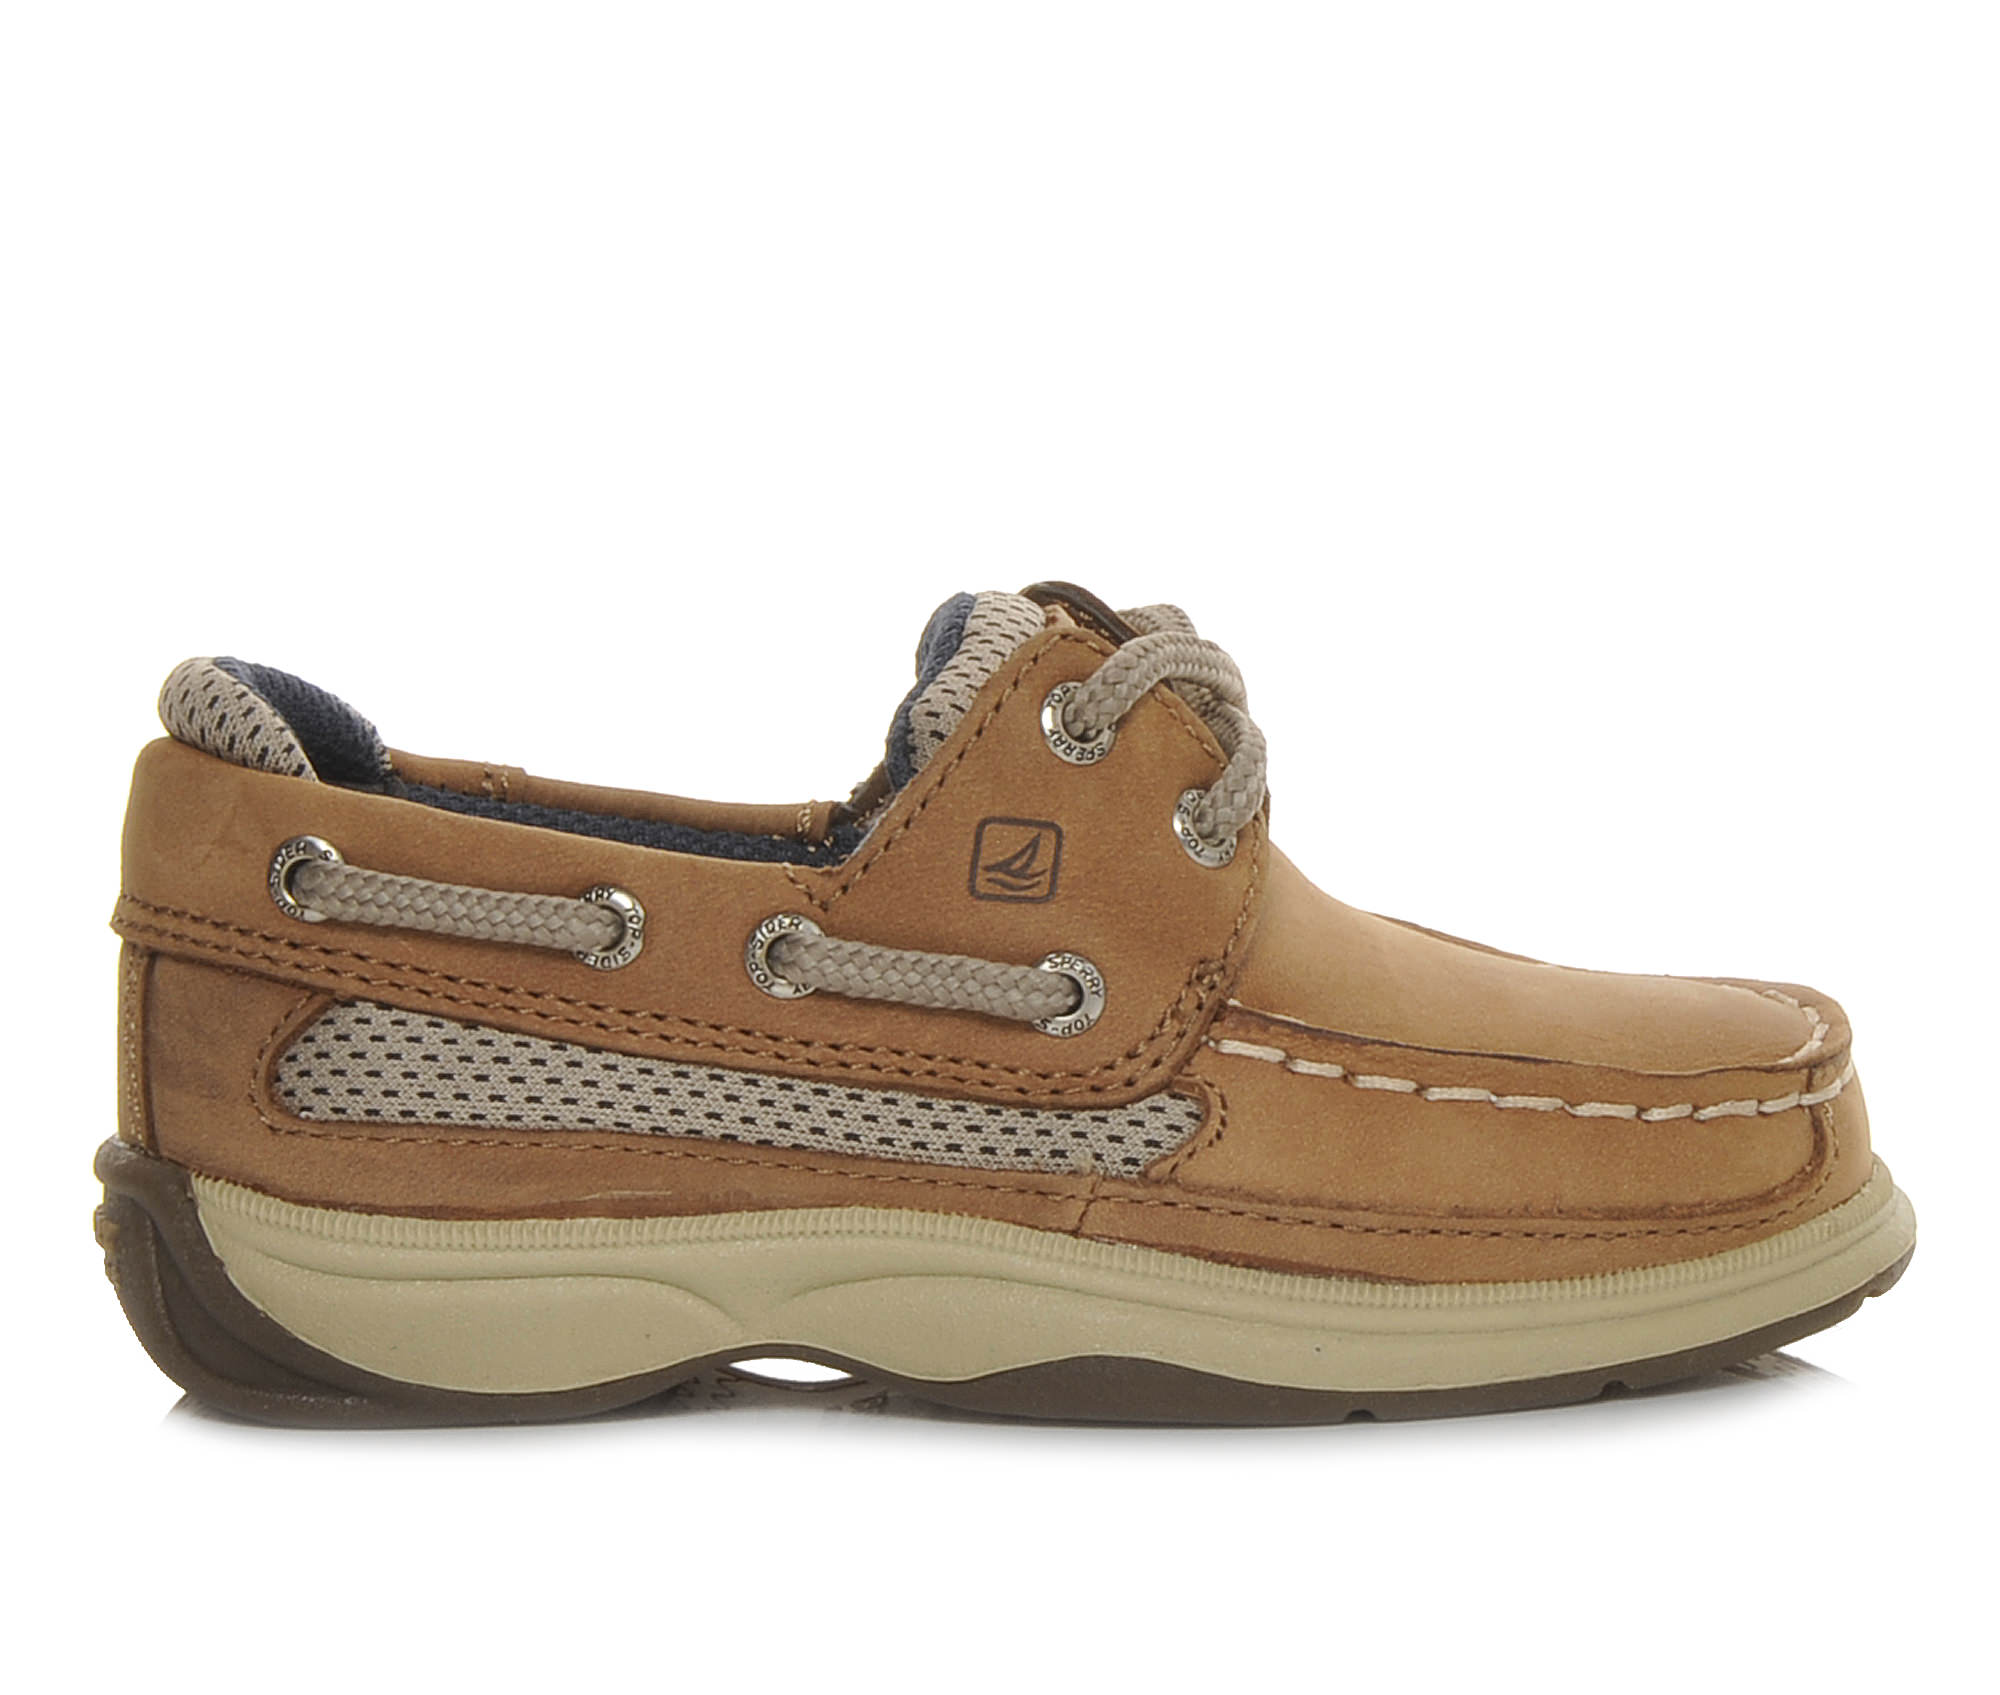 Boys' Sperry Infant Lanyard Boat Shoes (Brown)